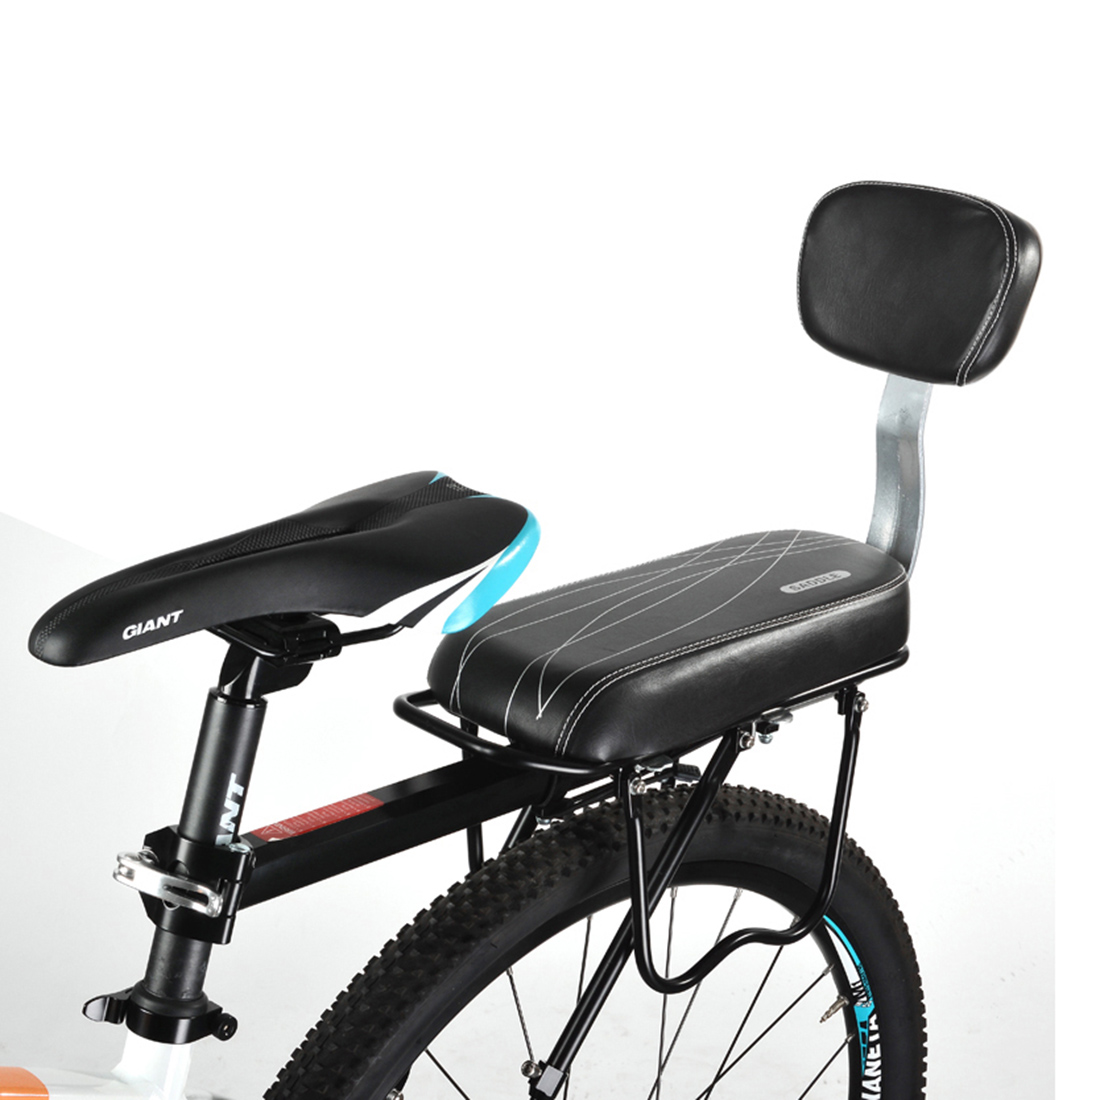 aeProduct.getSubject()  sc 1 st  AliExpress.com & Aliexpress.com : Buy Bicycle Child Seat PU Leather Cover Bike Rack ... islam-shia.org